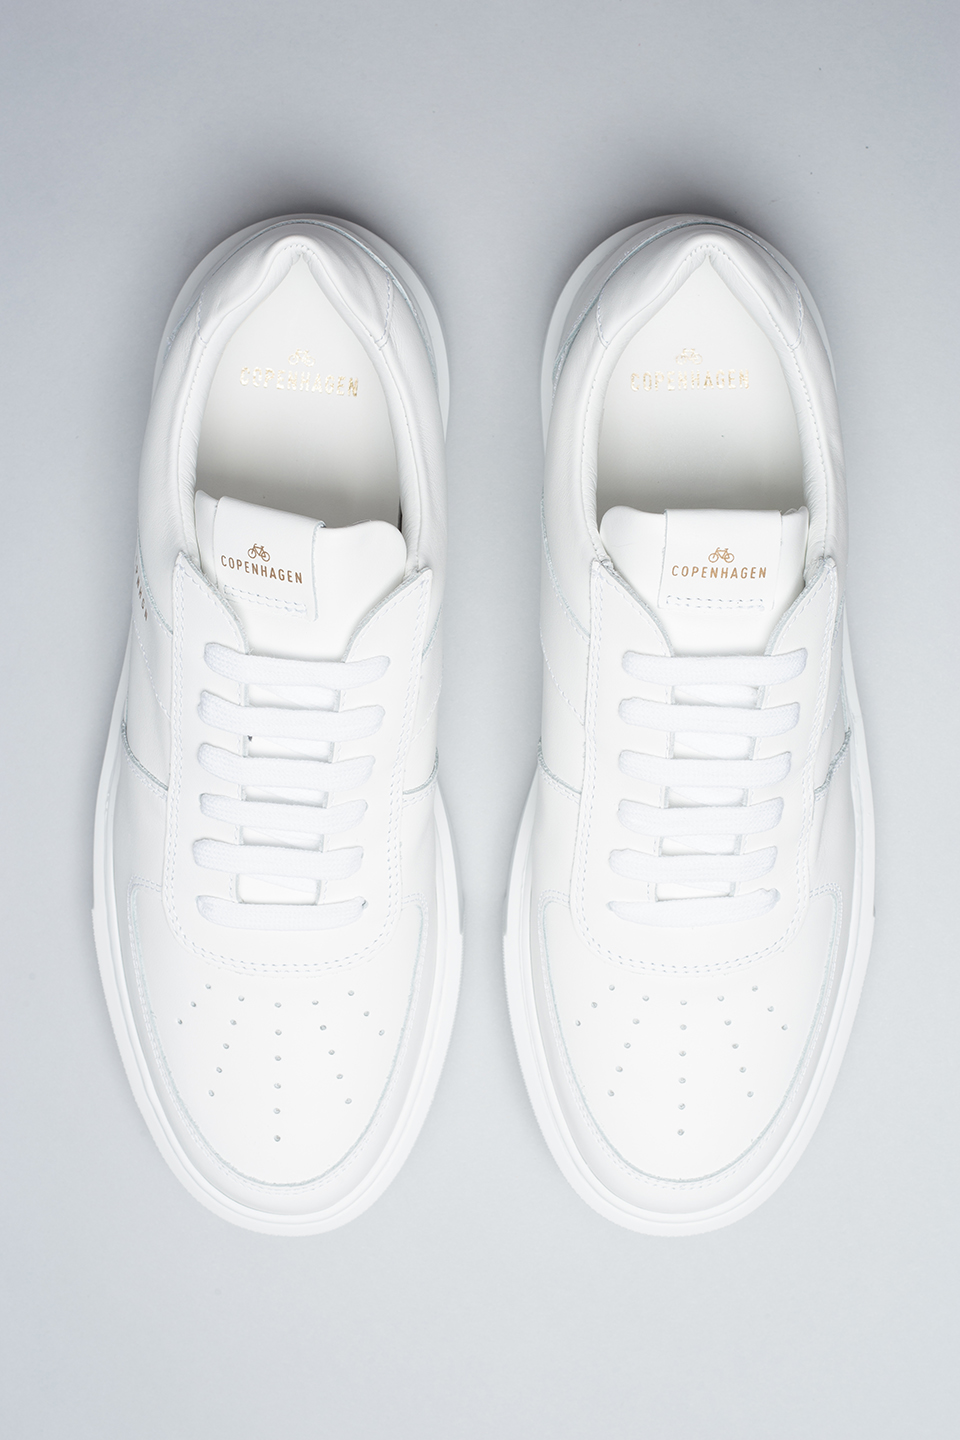 CPH152M vitello white - alternative 3